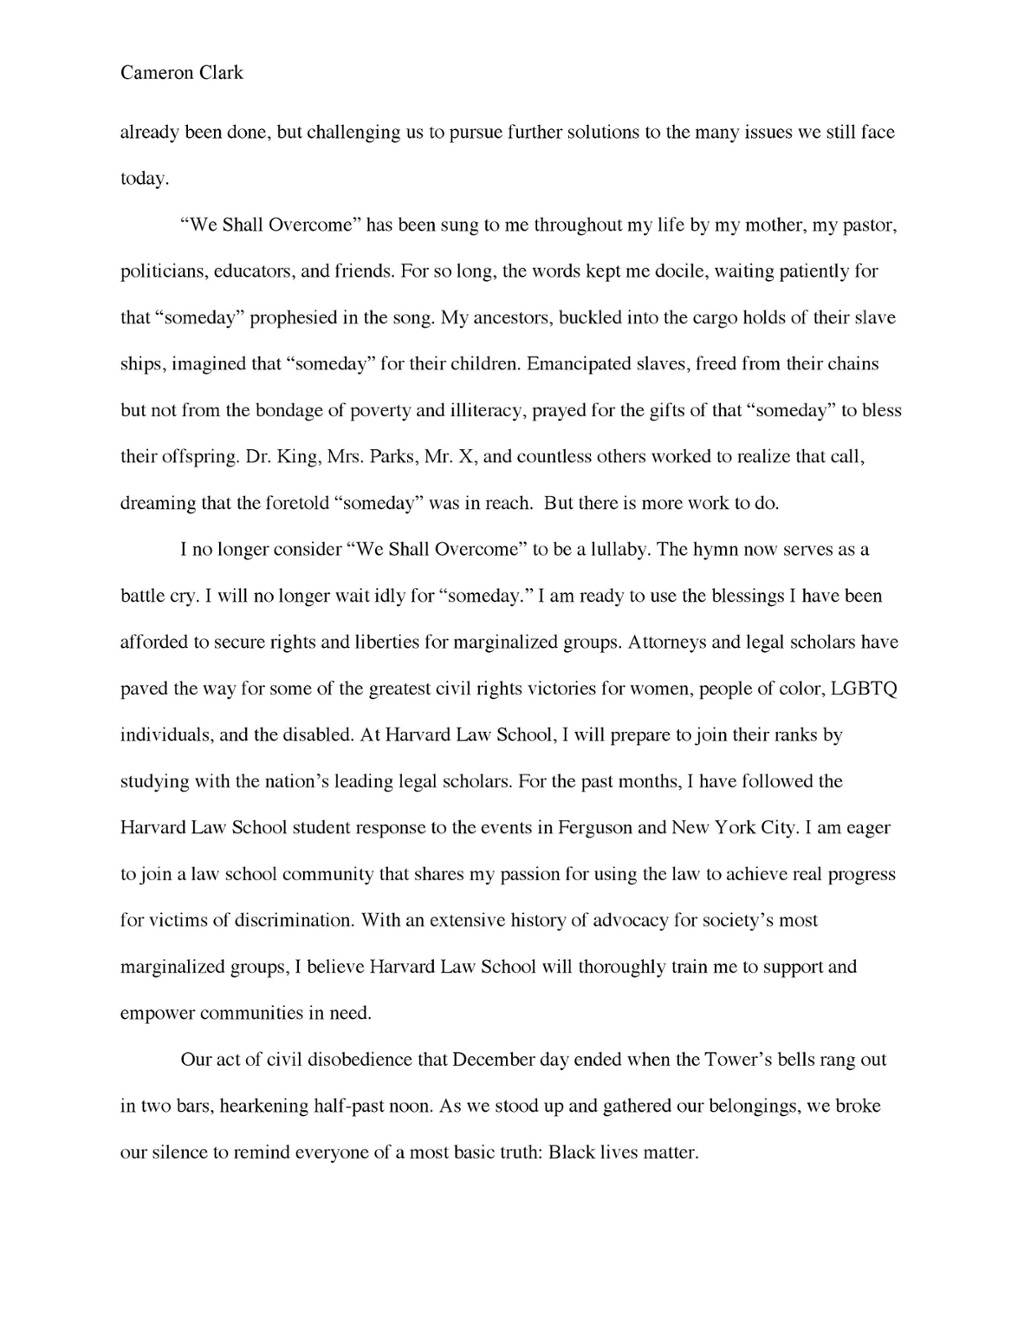 Descriptive Essay About Central Park